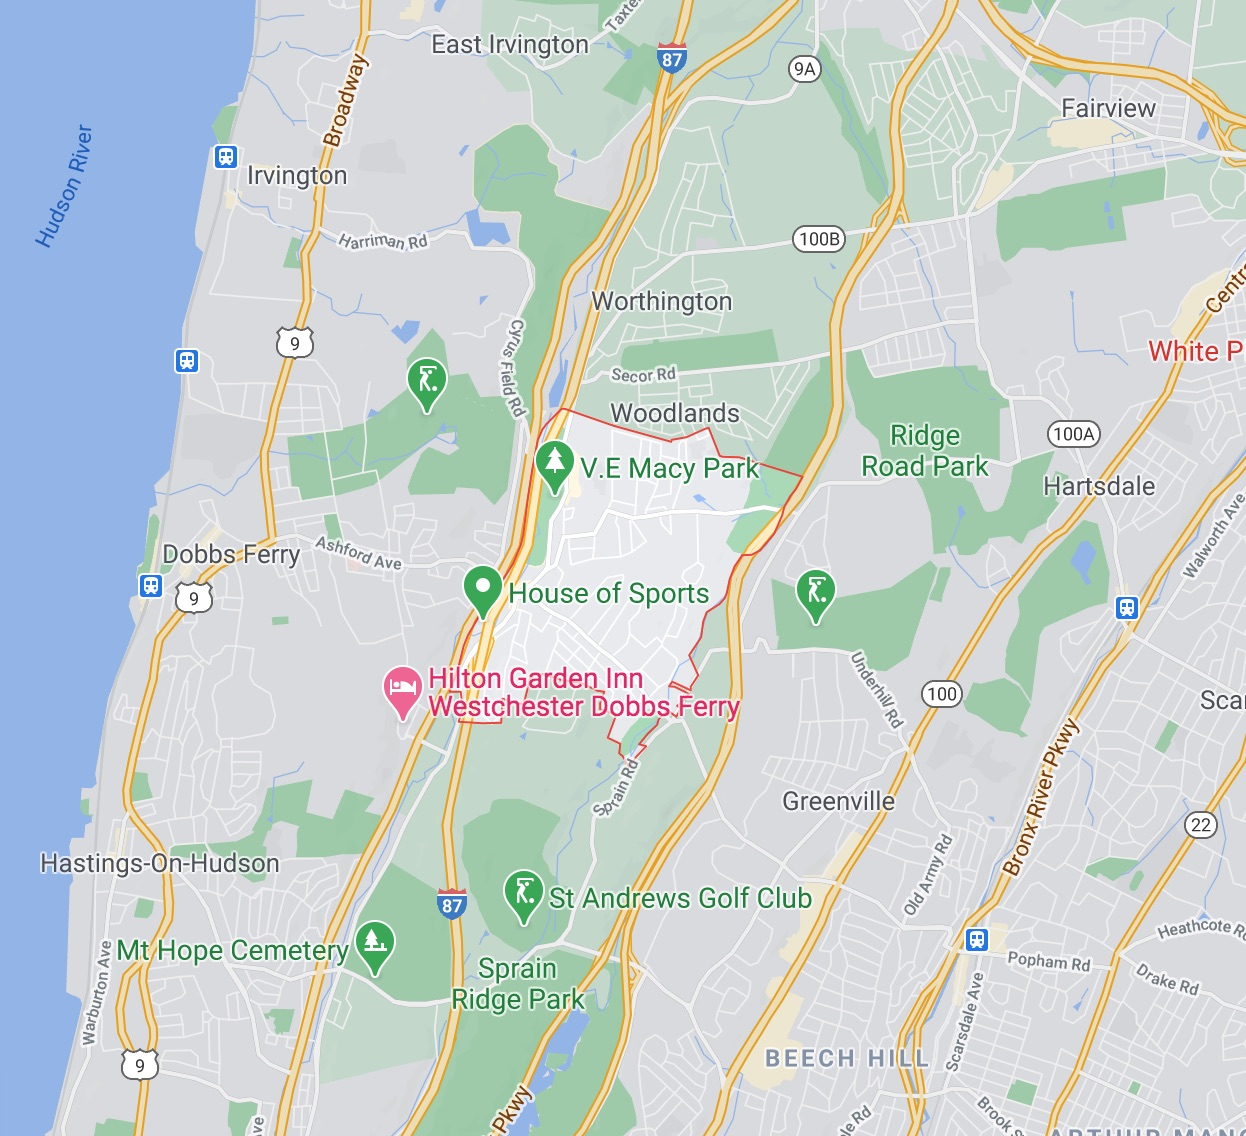 near, Ardsley, NY, New York, long, Island, longisland, pet, store, petstore